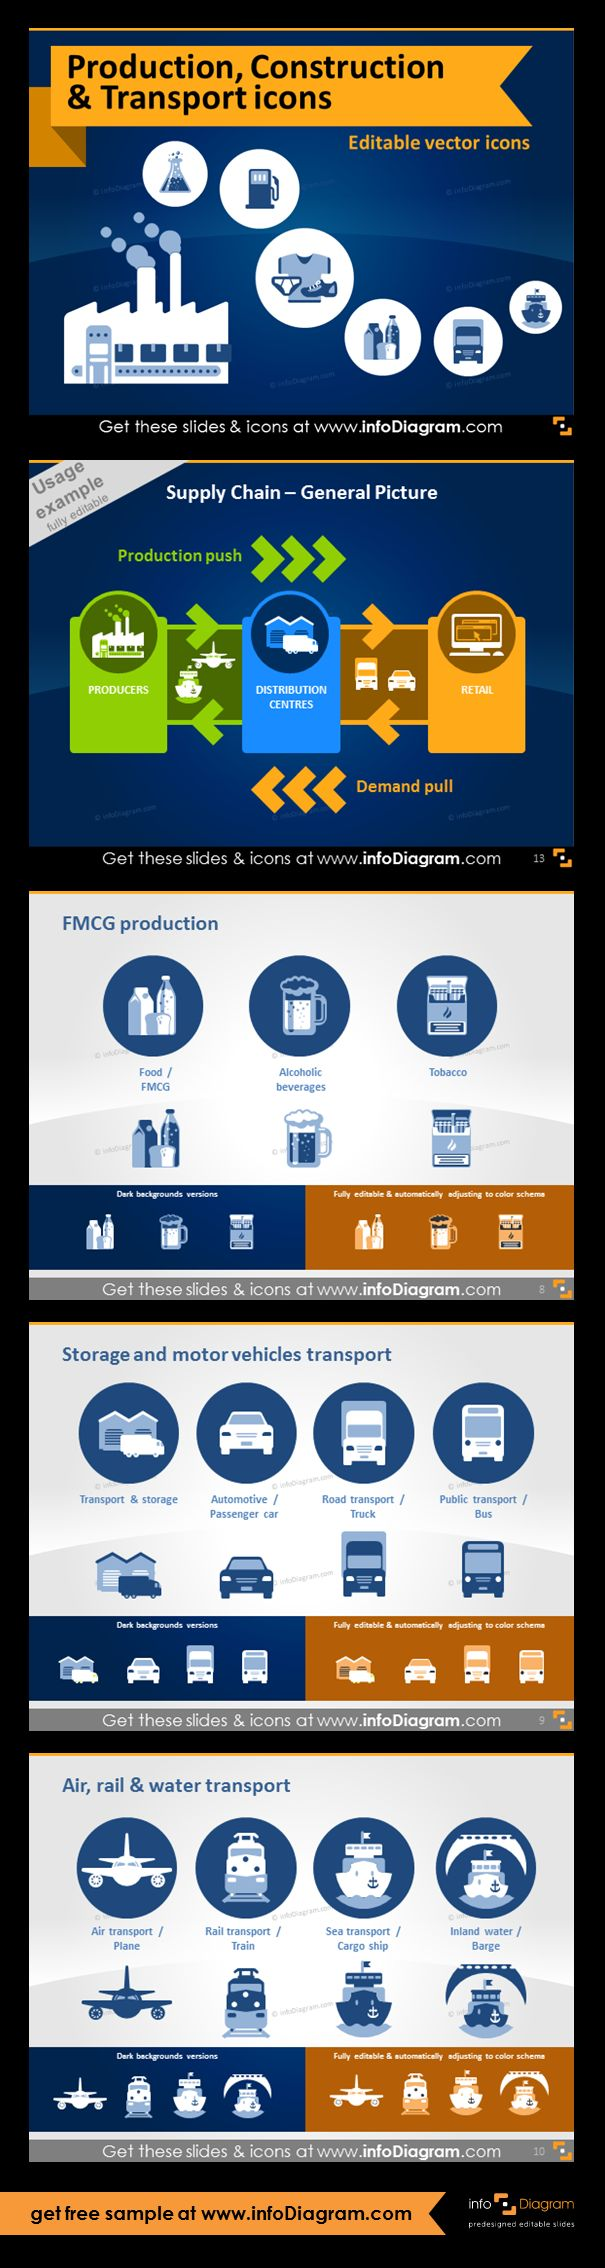 Industry icons: FMCG production icons: food FMCG, alcoholic beverages, tobacco symbols. Storage and motor vehicles transport icons: transport, storage, automotive, car, truck, road transport, public transport, bus. Air, land, water transport icons: air transport, plane, rail transport, sea transport, cargo ship, barge, inland symbols. Usage example on Supply Chain - General Picture illustration (infographics with icons).